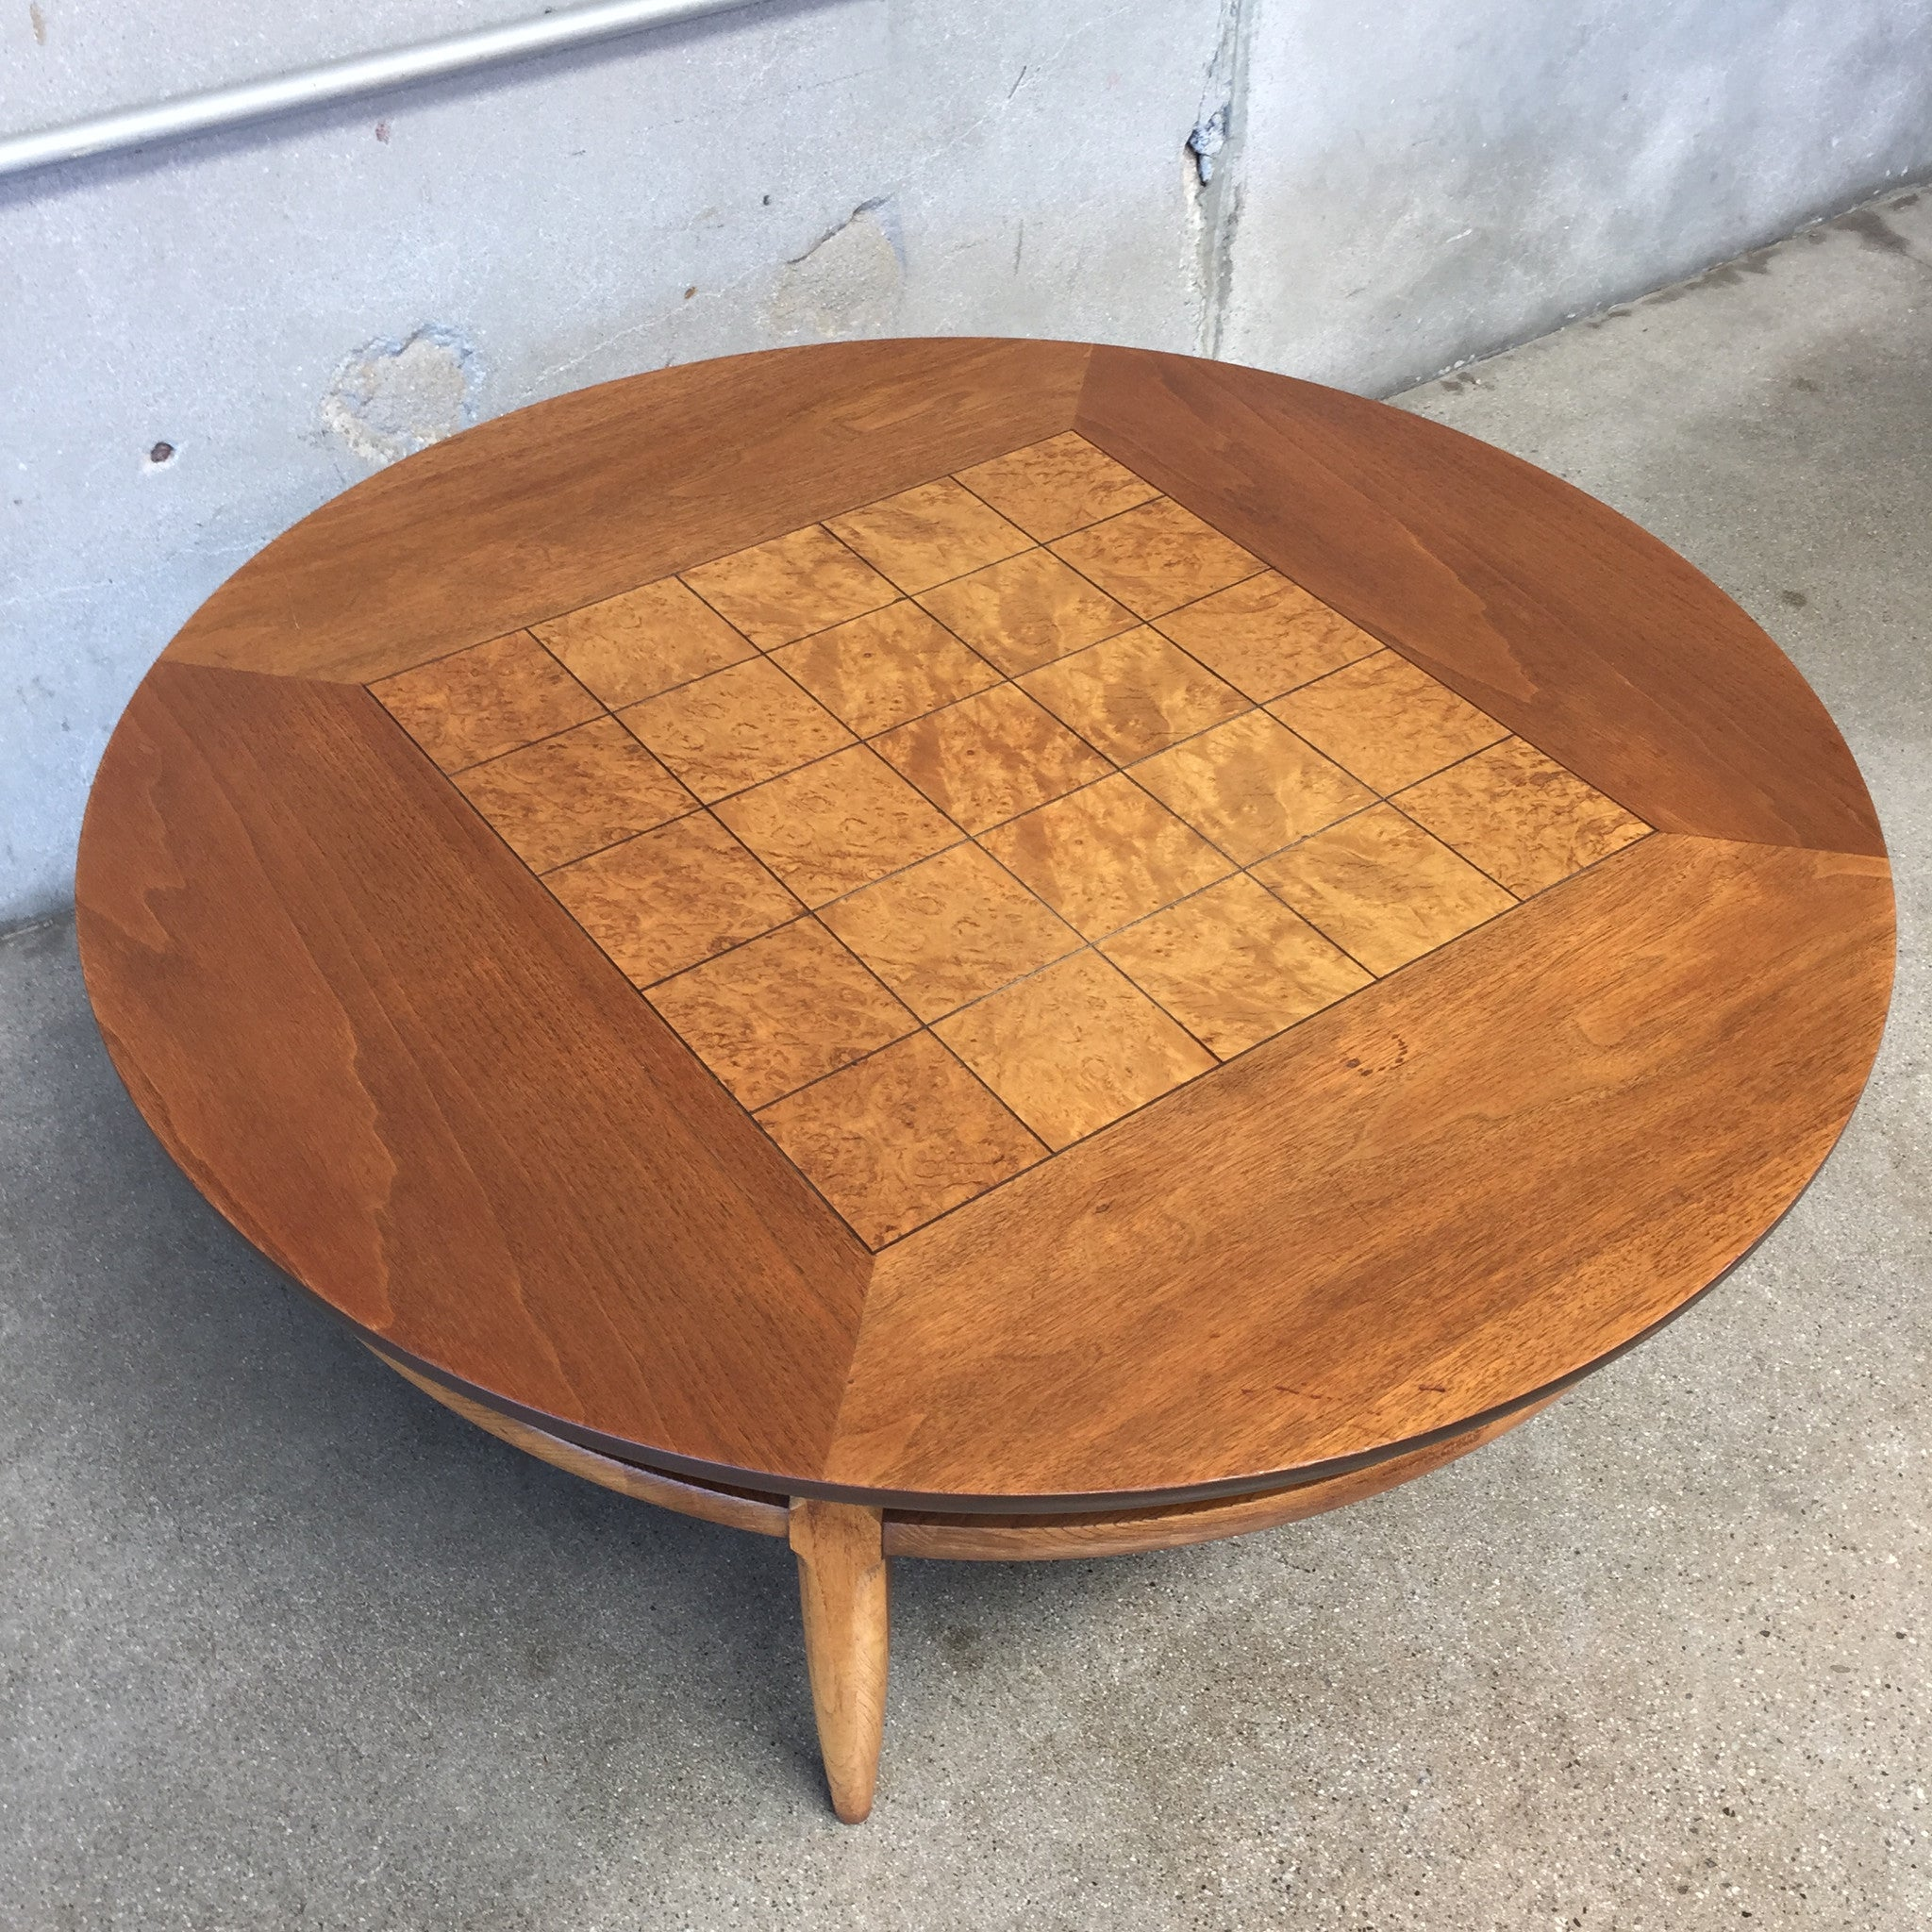 60 s Lane Round Coffee table Burl Inlaid Squares – UrbanAmericana